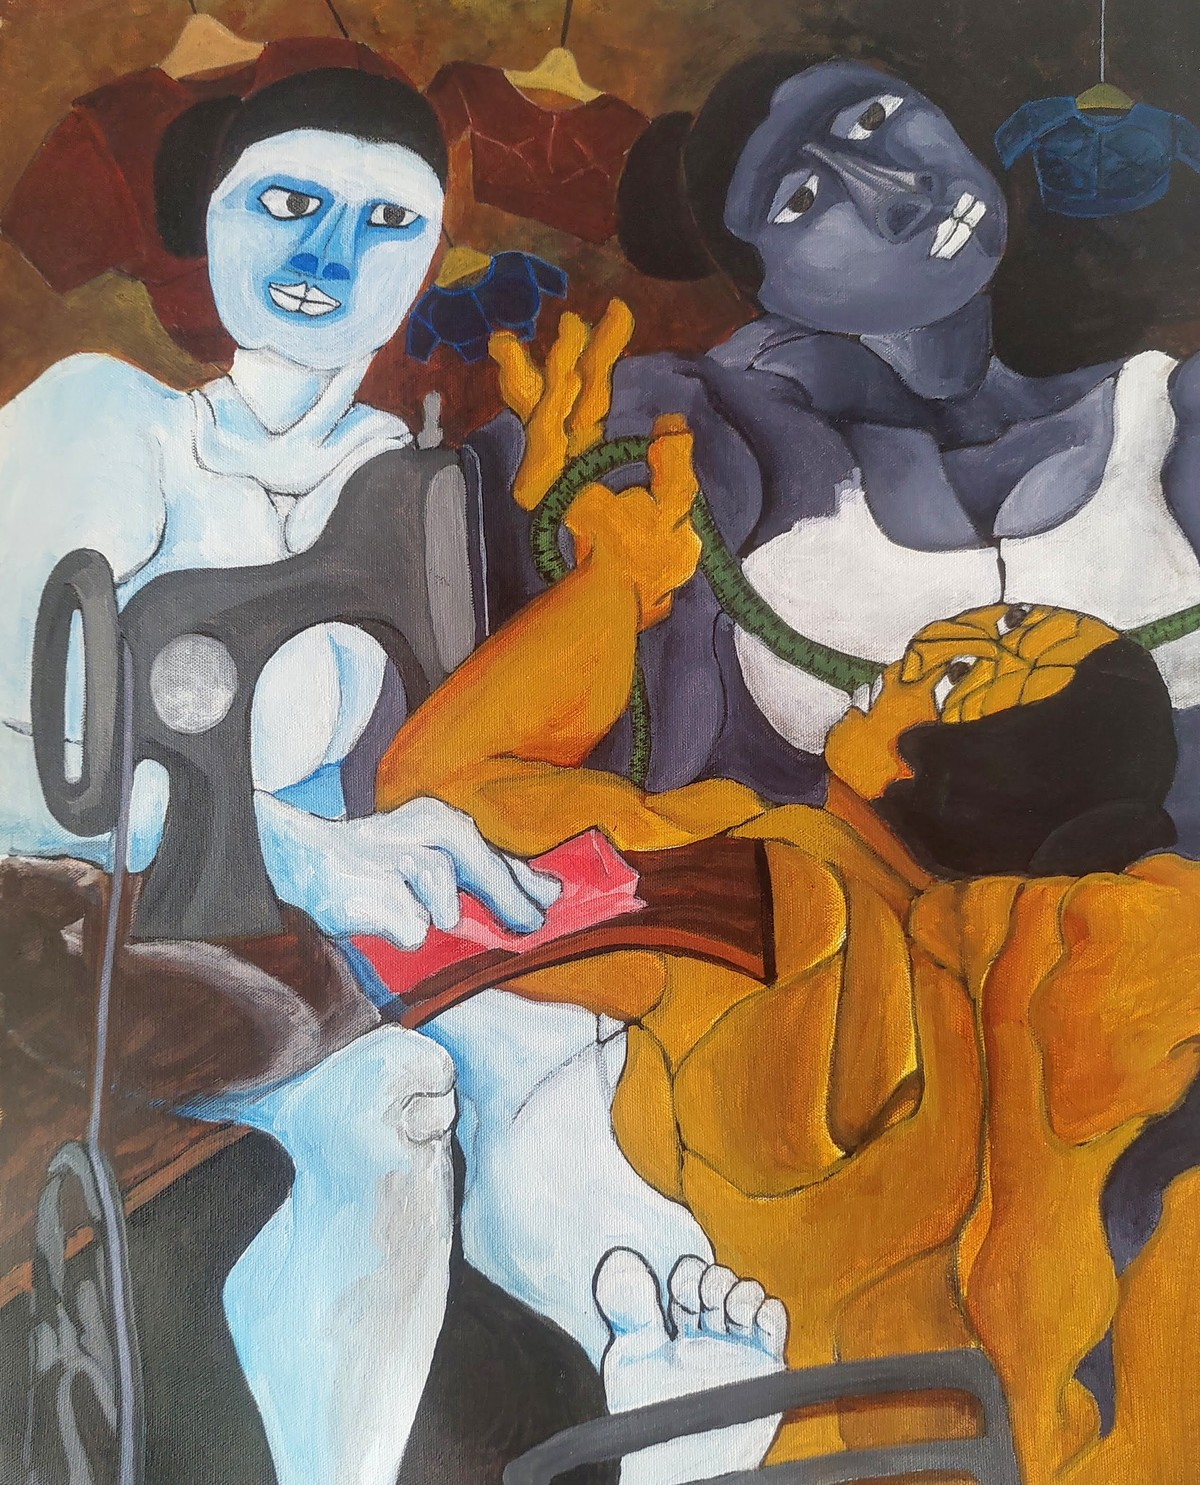 Ladies tailor by DEB SANJOY DUTTA, Expressionism Painting, Acrylic on Canvas, Kabul color